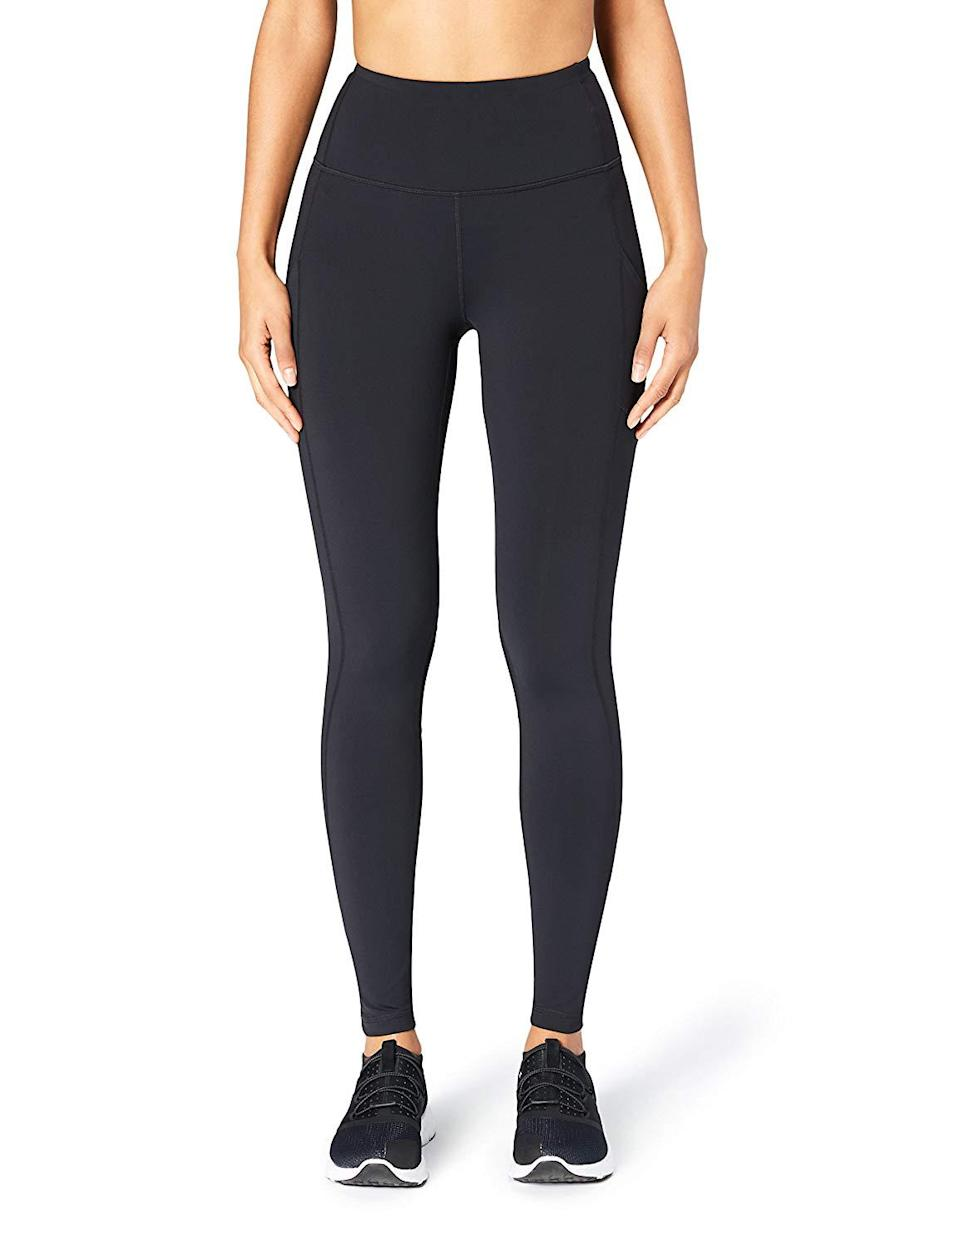 "<h3><a href=""https://www.amazon.com/Core-10-Womens-Onstride-Legging/dp/B072F5LC87"" rel=""nofollow noopener"" target=""_blank"" data-ylk=""slk:Core 10 Full-Length Legging With Pockets"" class=""link rapid-noclick-resp"">Core 10 Full-Length Legging With Pockets</a> </h3><br><br>4.4 out of 5 stars and 306 reviews<br><br><strong>Promising Review:</strong> According to <a href=""https://www.amazon.com/gp/customer-reviews/RA663R5LRTHT4/"" rel=""nofollow noopener"" target=""_blank"" data-ylk=""slk:one reviewer"" class=""link rapid-noclick-resp"">one reviewer</a>, these are the ""holy grail"" of leggings, particularly for plus-size shoppers. And while she notes they are expensive, you can score this pair at almost half the price during Prime Day: ""It's not easy to find a pair of leggings that won't roll down during runs but I didn't have to adjust these once during my last race. The feel of these leggings was great as well. They had a degree of compression to them where I felt secure, but not so much where I felt suffocated. I wish they weren't so expensive, but they are definitely quality leggings and I will probably be ordering more.""<br><br><strong>Core 10</strong> 'Build Your Own' Onstride Run Full-Length Legging with, $, available at <a href=""https://www.amazon.com/Core-10-Womens-Onstride-Legging/dp/B071NQ9B8Z"" rel=""nofollow noopener"" target=""_blank"" data-ylk=""slk:Amazon"" class=""link rapid-noclick-resp"">Amazon</a>"